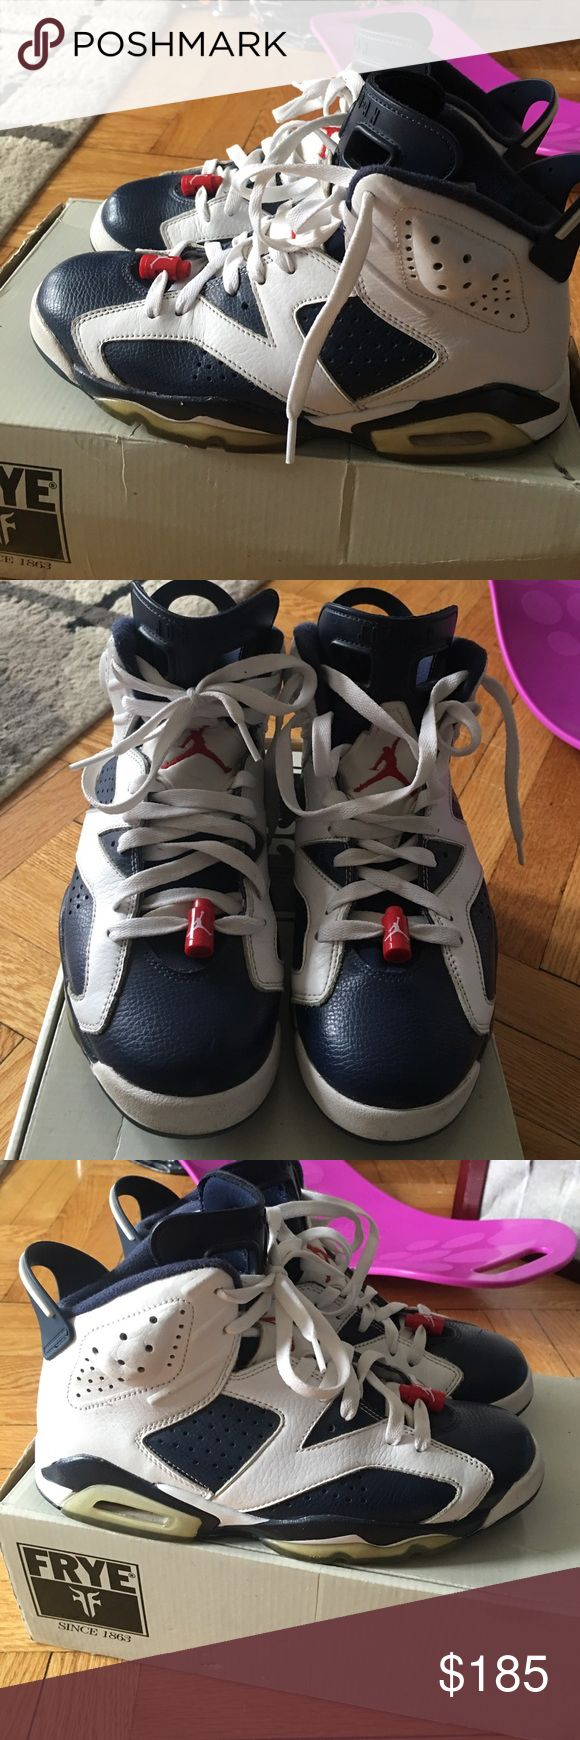 ⏳ MENS air Jordan retro Olympic 7 Good condition showed u all angles nothing to hide . If u notice the bottom is yellowing but when looking from side it is not THAT YELLOW AT ALL NO WHERE NEAR THEY ACTUALLY IN GOOD SHAPE. Everything u see comes with the shoes the laces and lace locks Jordan Shoes Sneakers